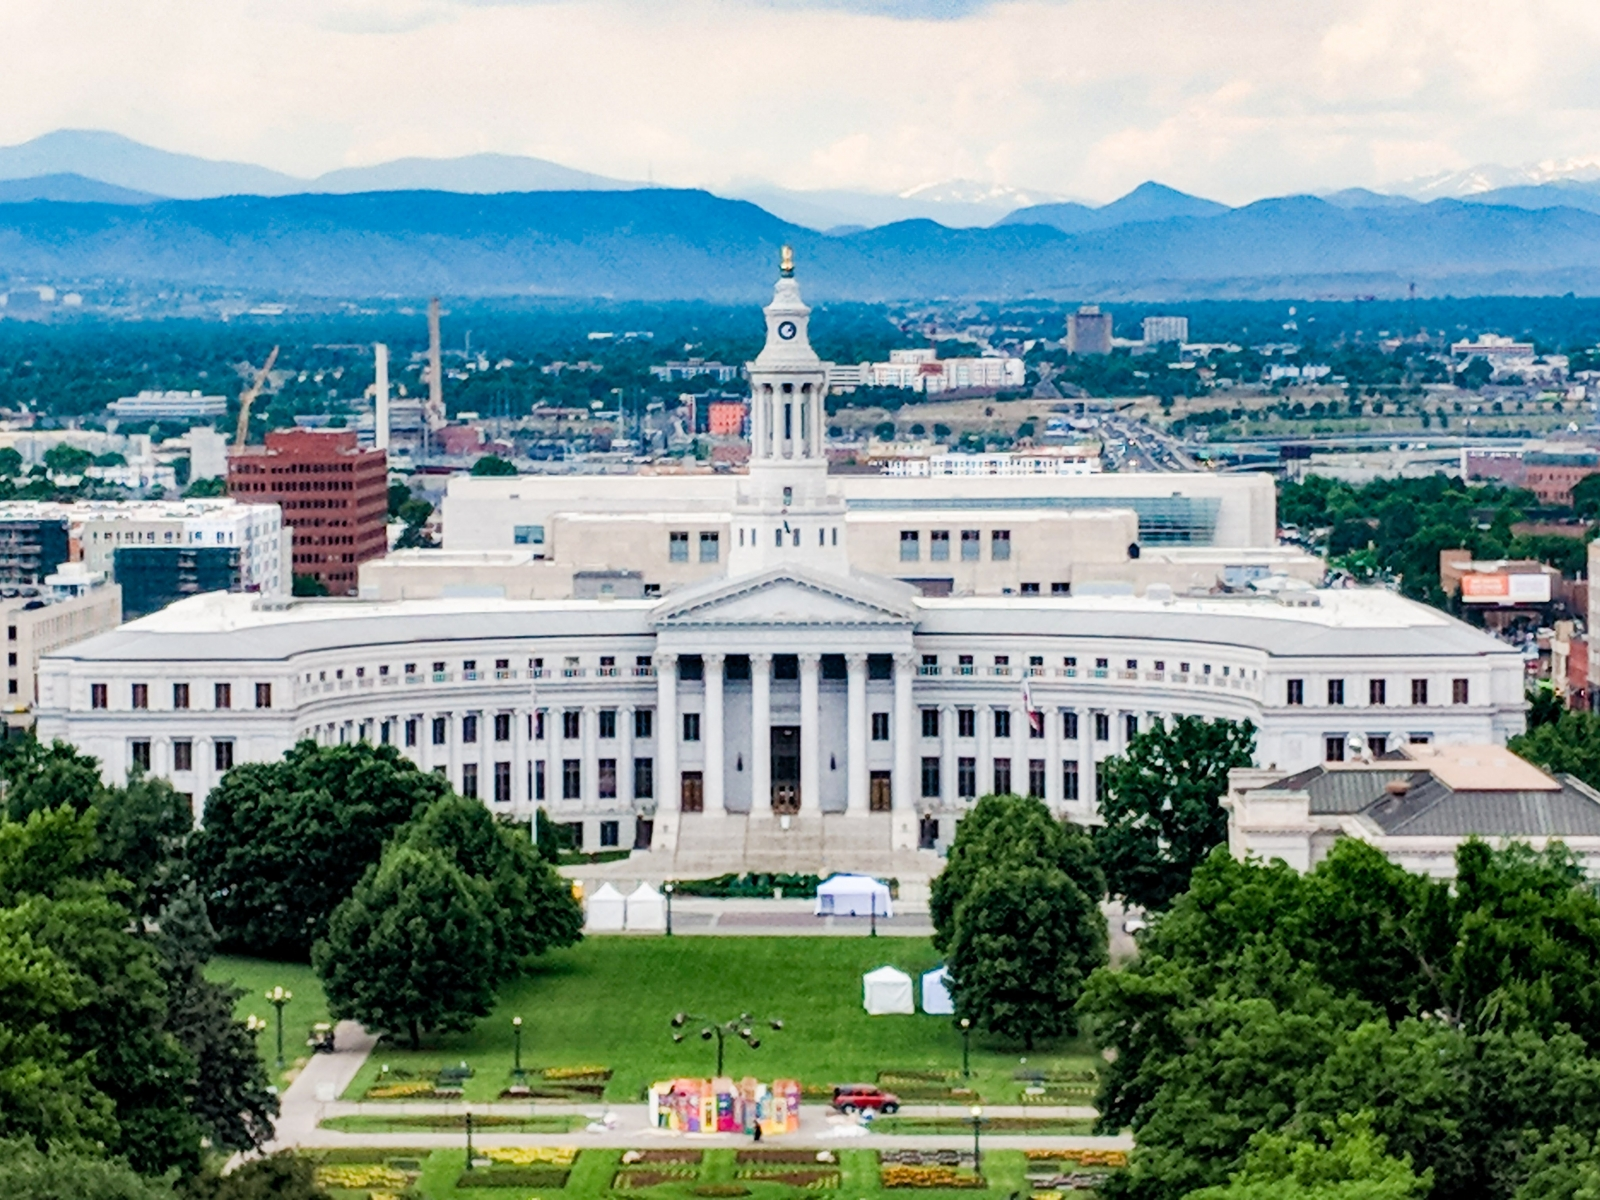 View of Denver City Council from top of Colorado State Capitol